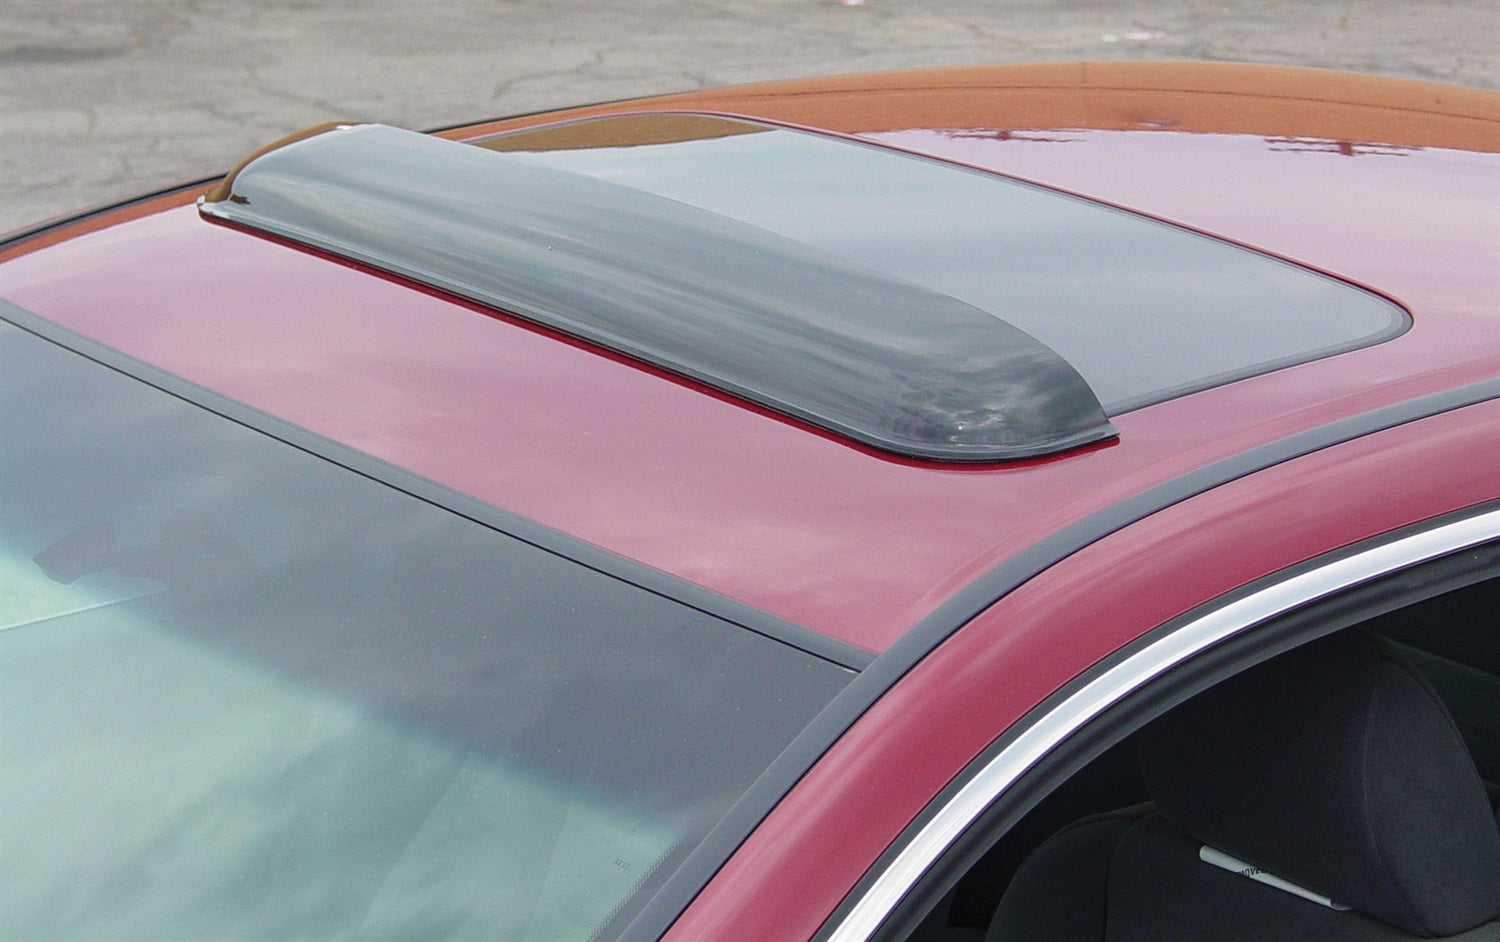 2008 Ford Escape Sunroof Wind Deflector